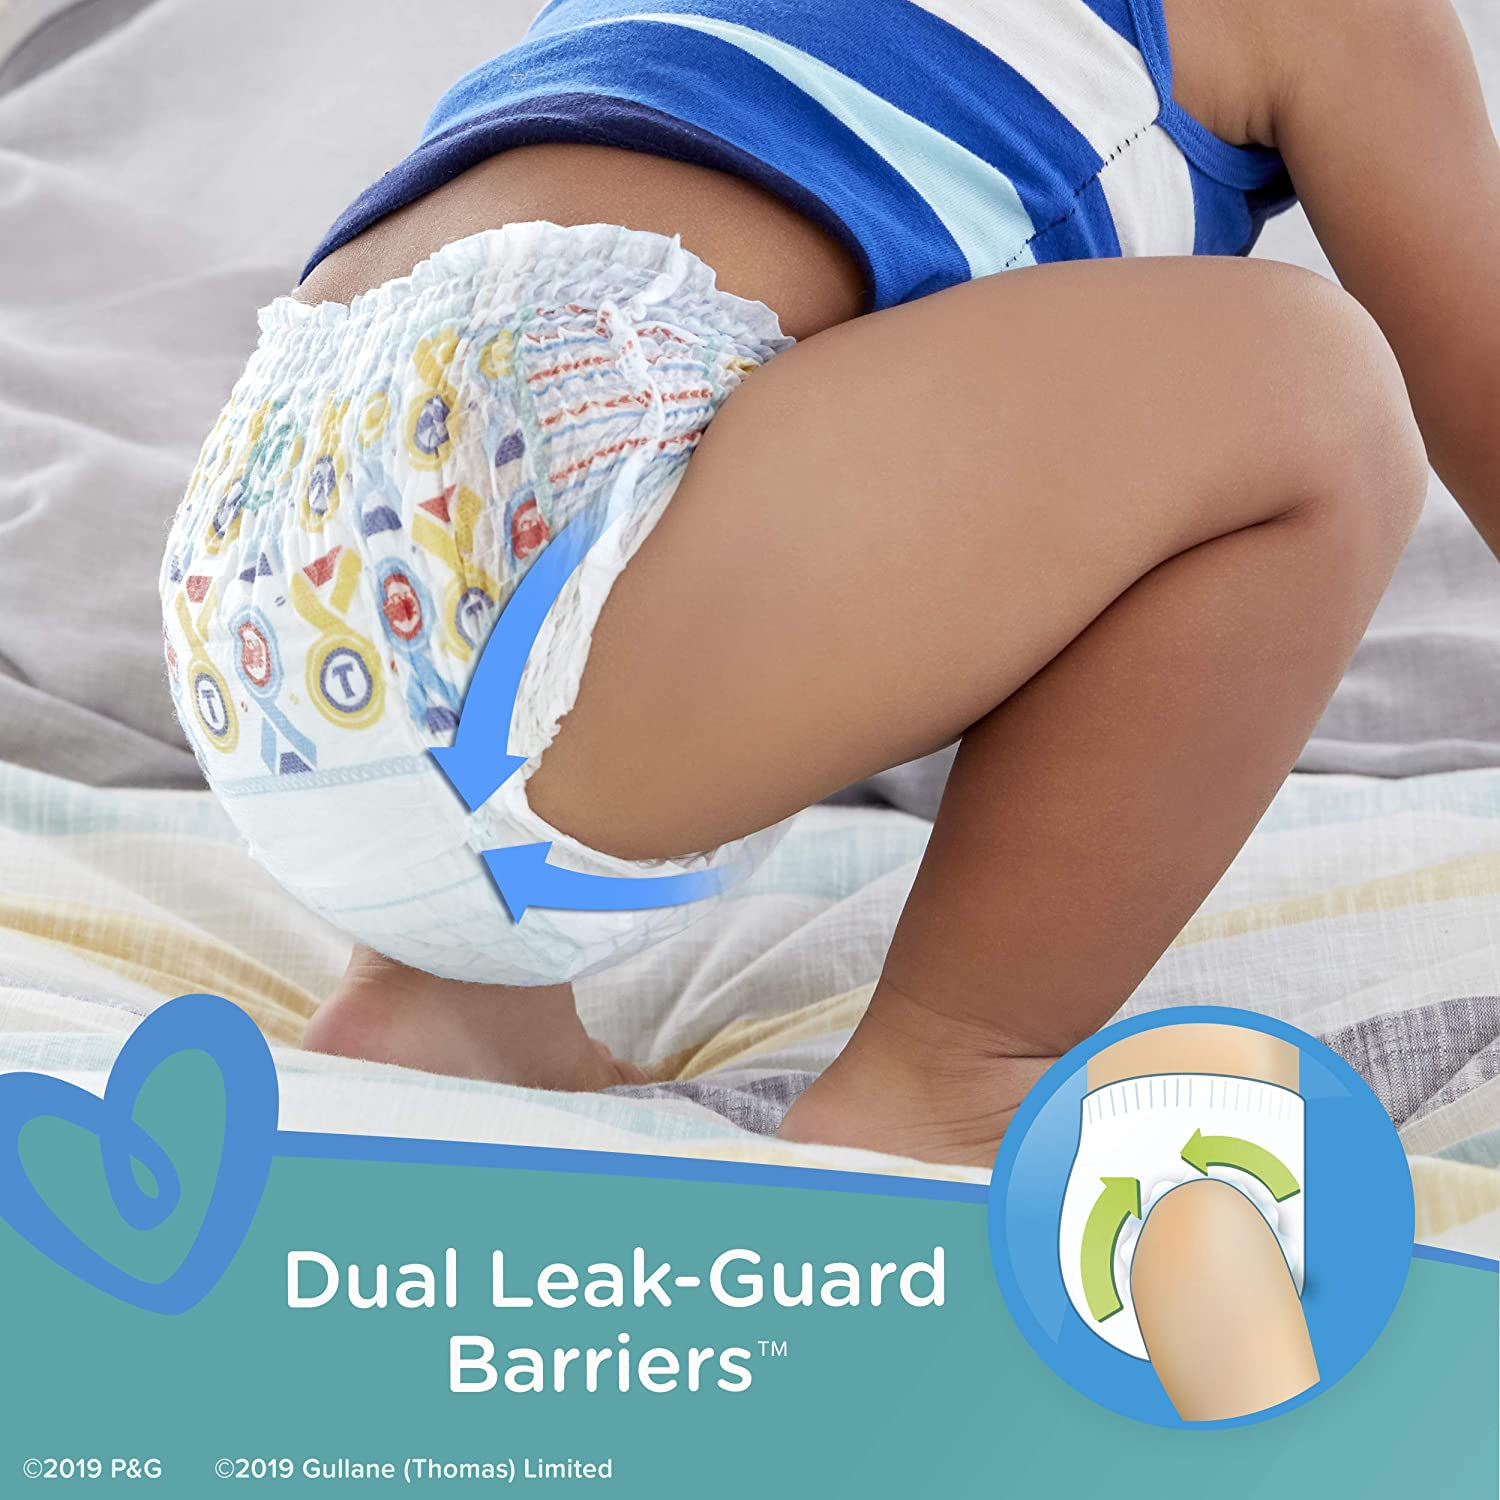 Pampers Easy Ups Pull On Disposable Potty Training Underwear for Boys, Size 4, 2T-3T (140 Count), ONE MONTH SUPPLY